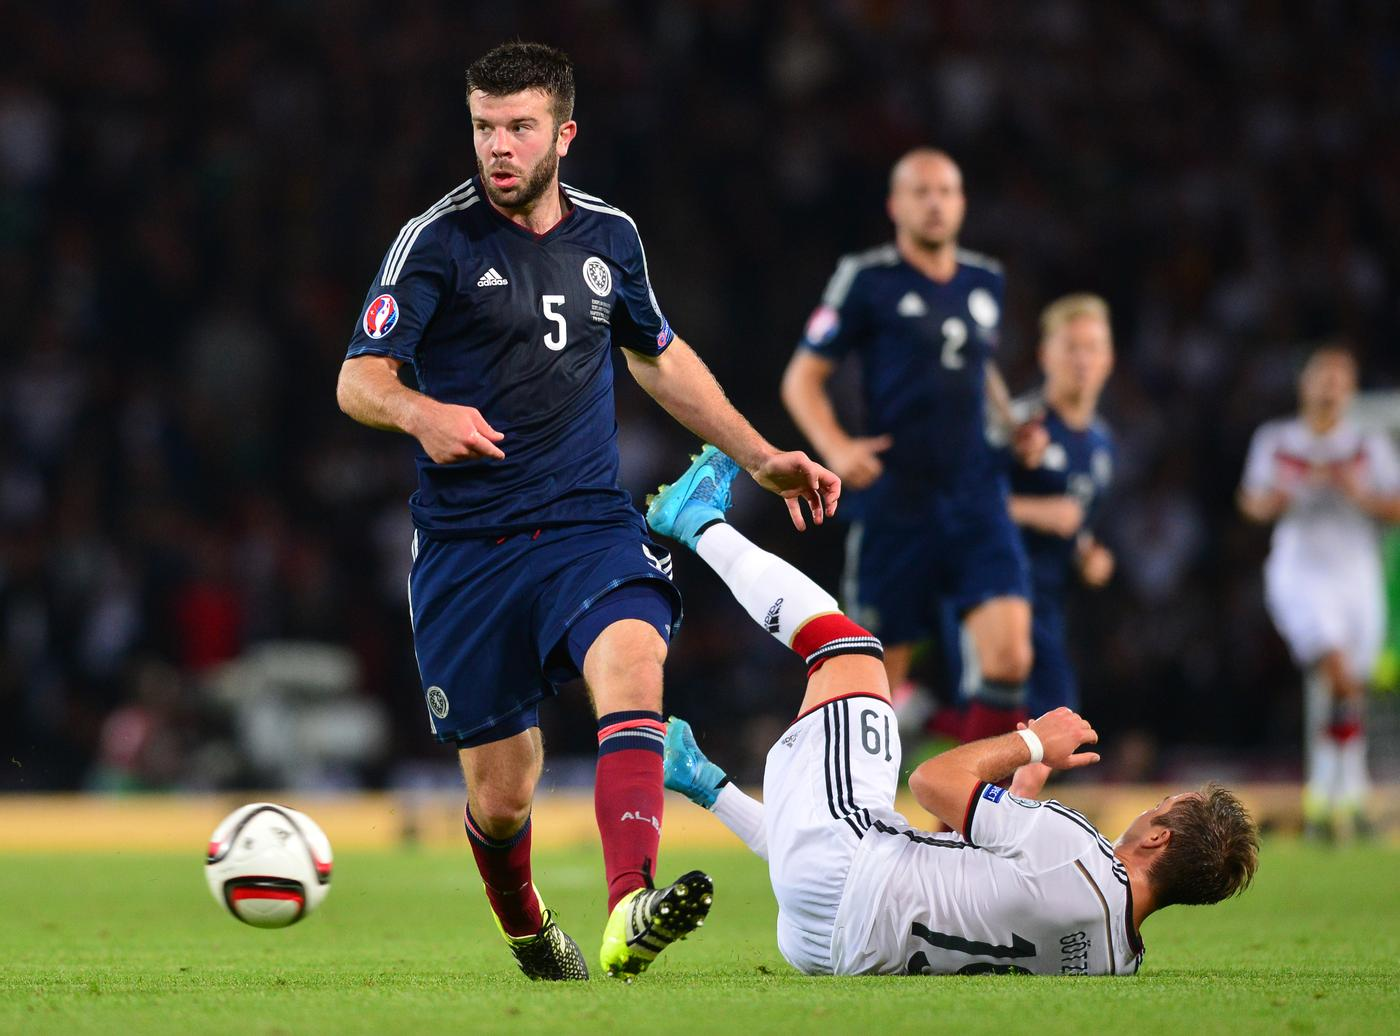 Scotland restored pride against Germany but was it too little too late for Euro 2016 qualification?